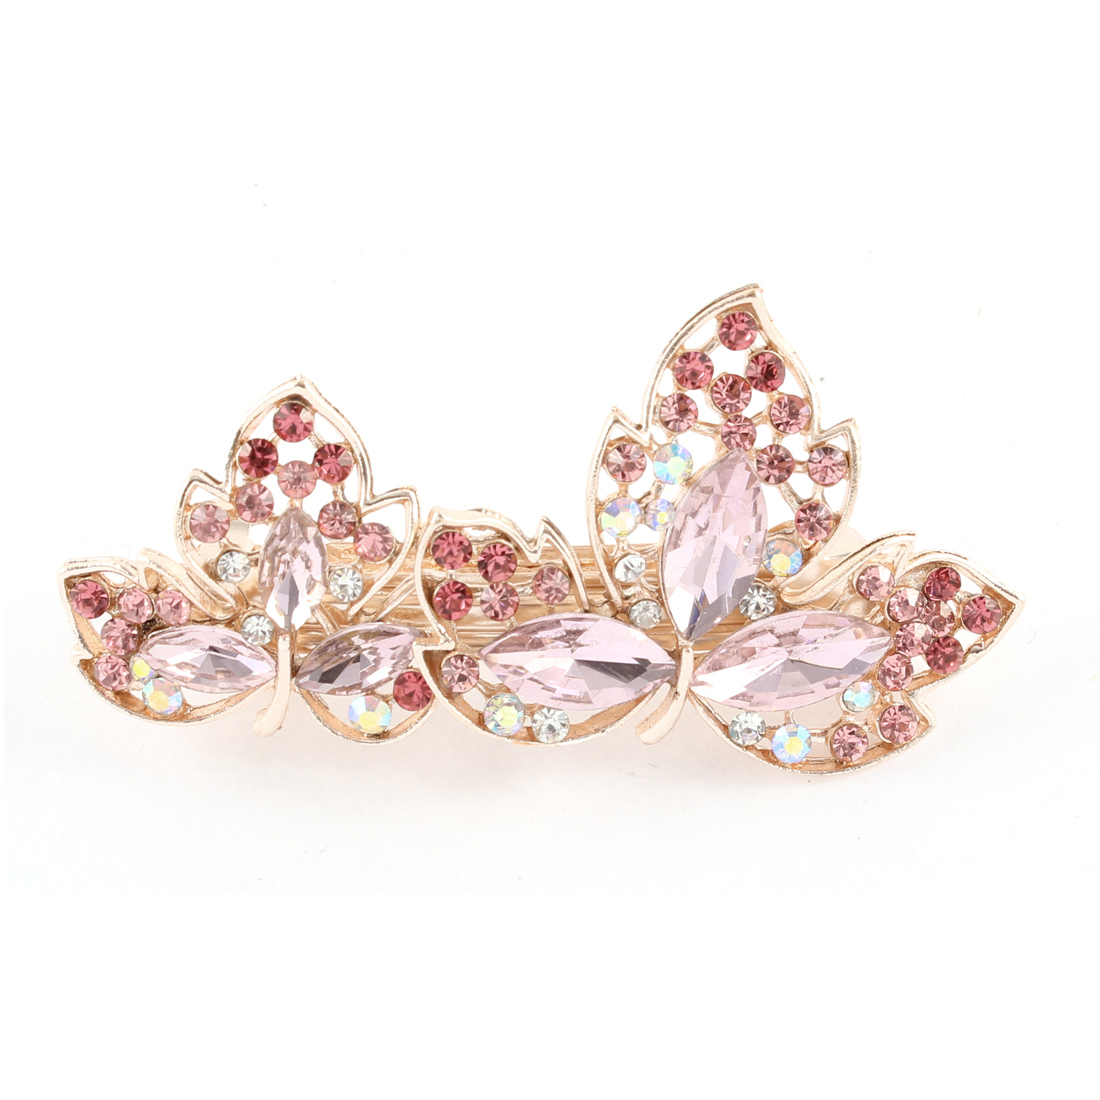 Rhinestone Glittering Floral French Hair Barrette Hairclip Hairpin